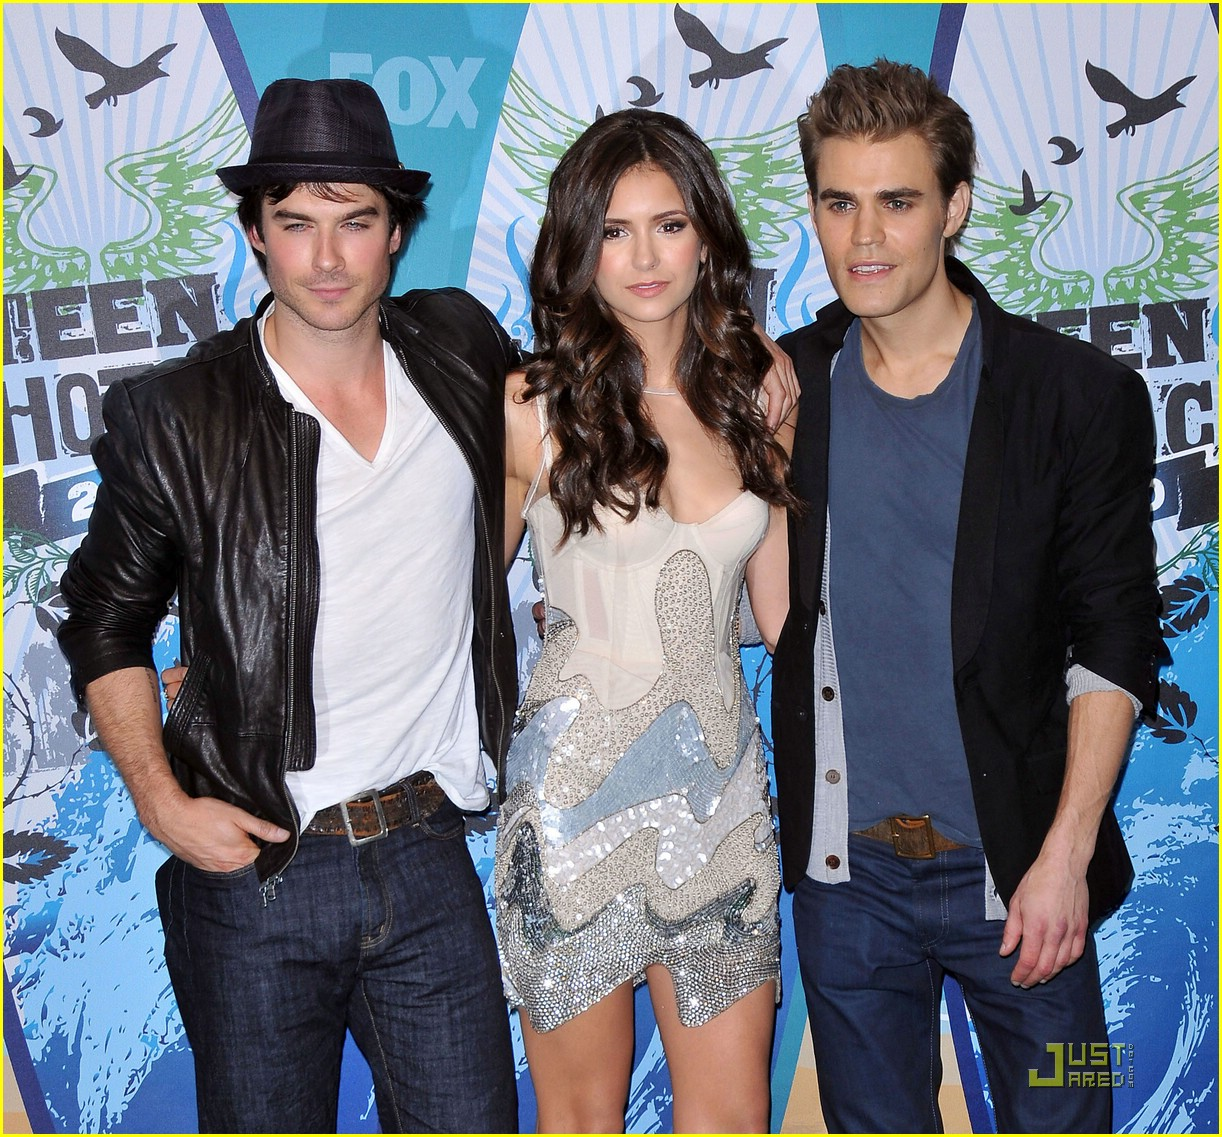 http://2.bp.blogspot.com/_-c36w6_kH1Q/TGBosS3E4sI/AAAAAAAAA9w/r_F0QTR446k/s1600/nina-dobrev-2010-tcas-04.jpg